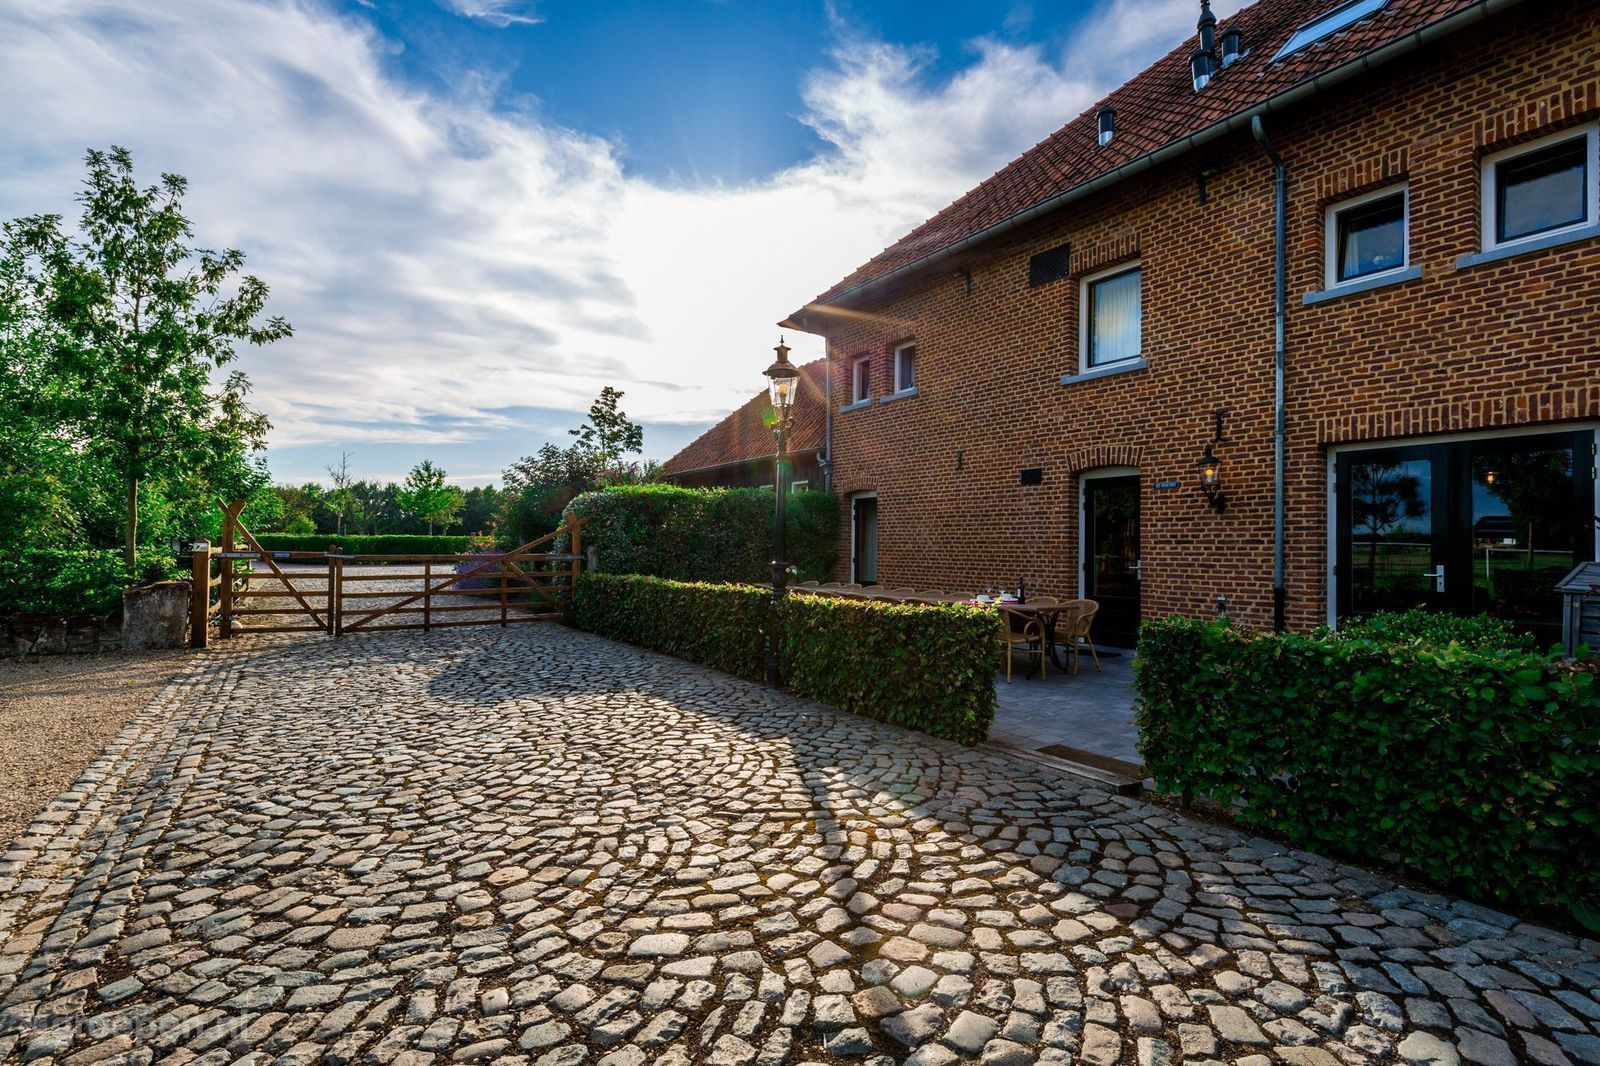 Group accommodation Slenaken-Heijenrath